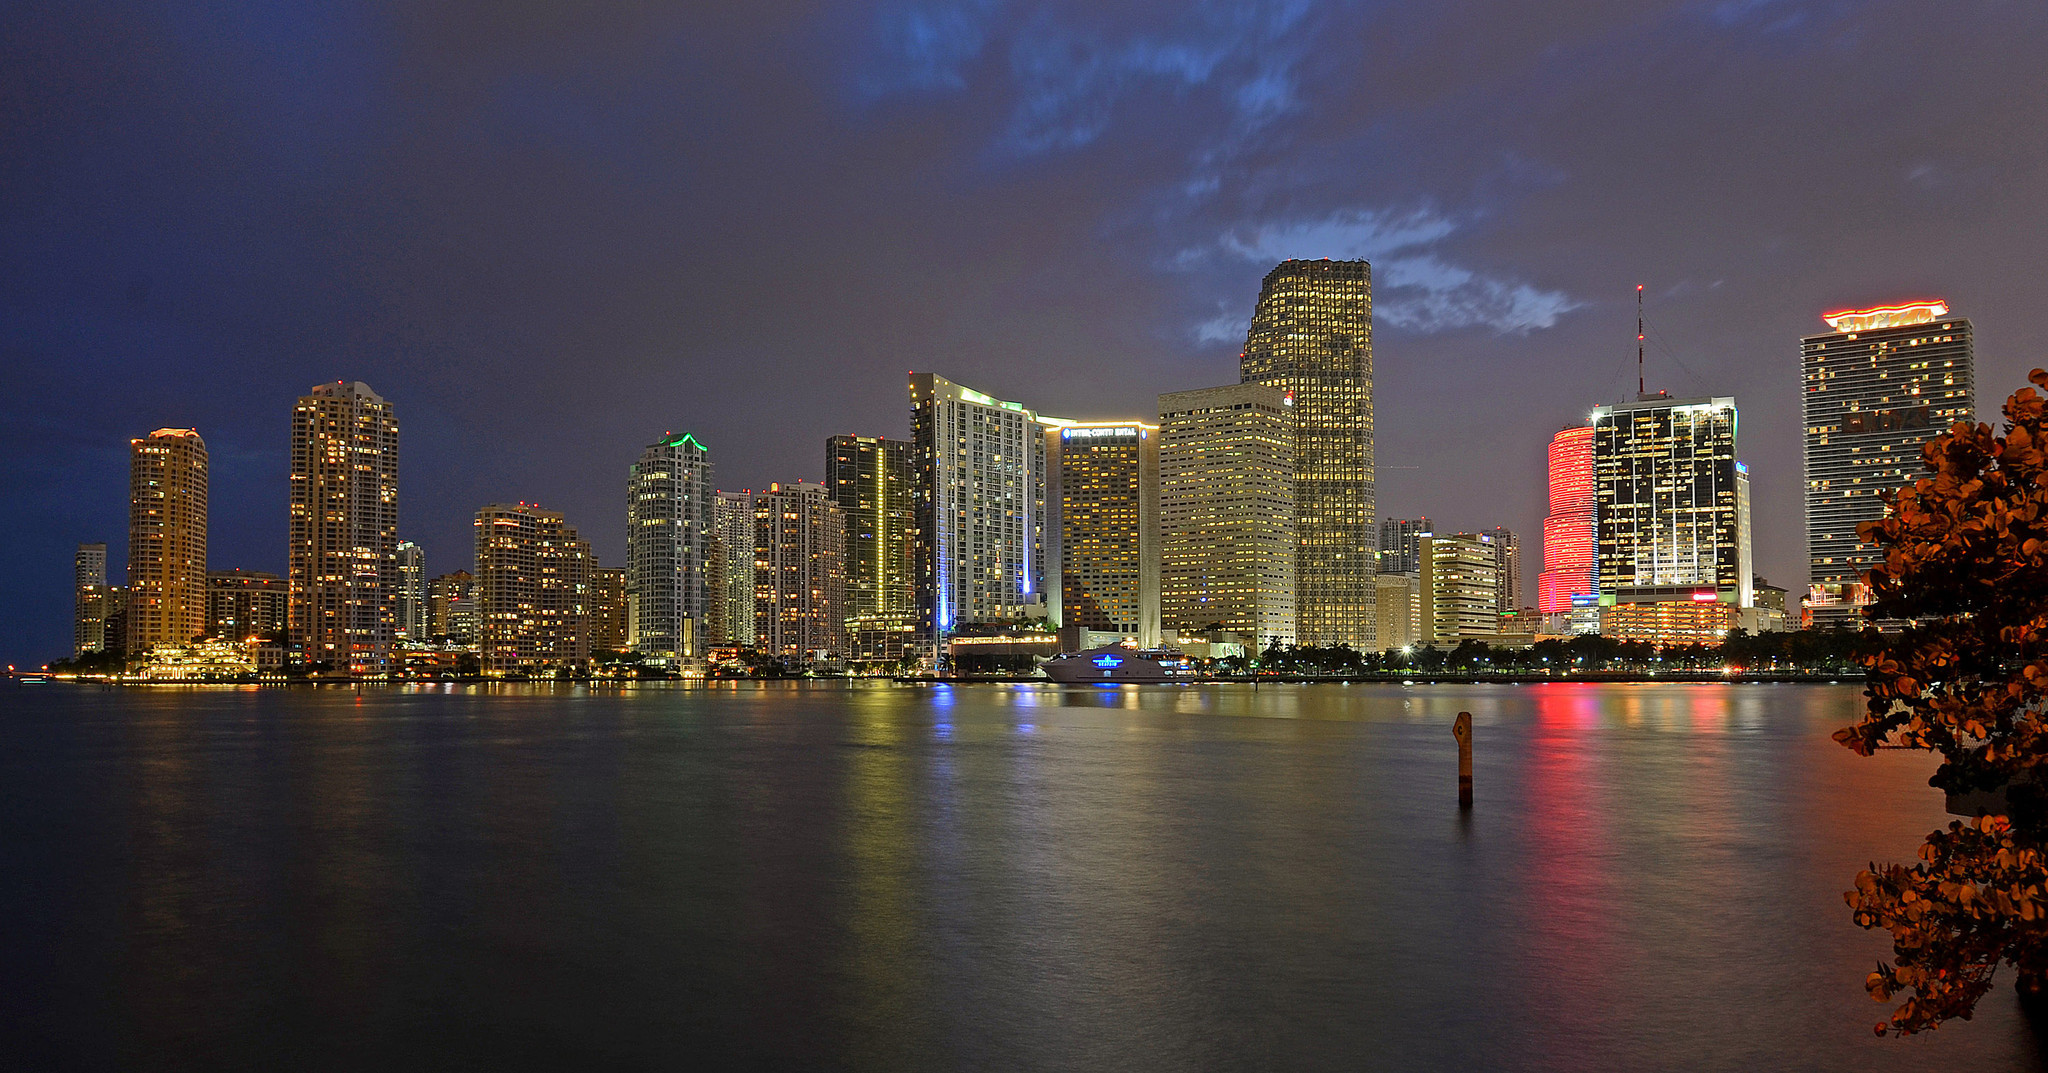 Miami is America's rudest city, according to Travel and Leisure magazine